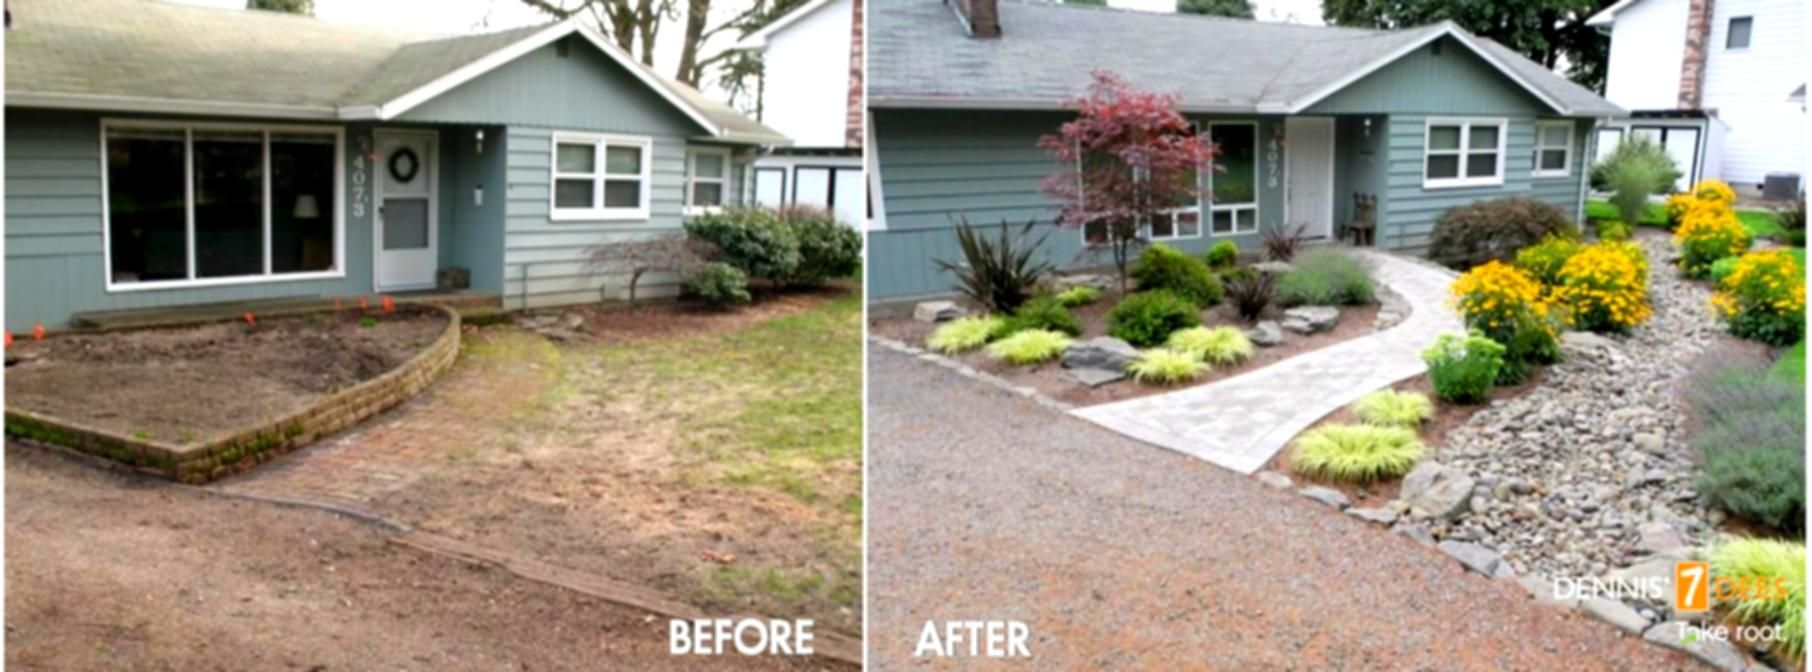 Yards on a budget simple front yard landscaping ideas on - Simple front yard landscaping ideas on a budget ...